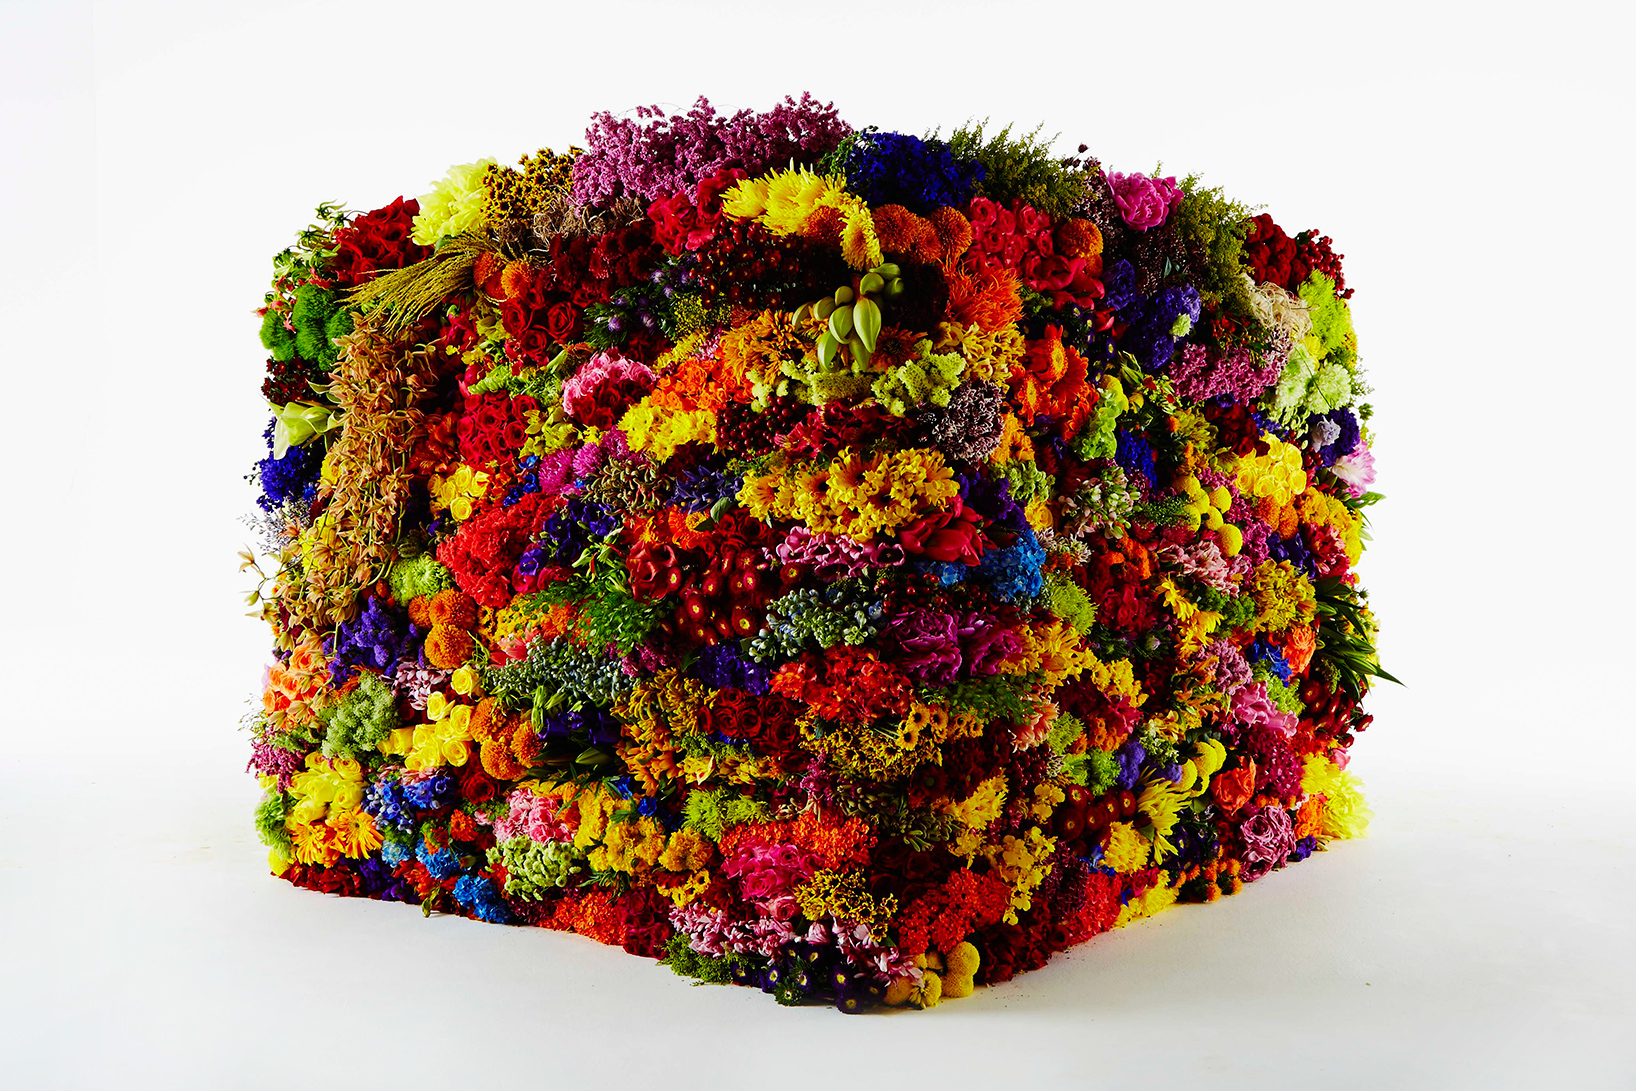 azuma makoto represents the stages of decomposition using flowers + leaves